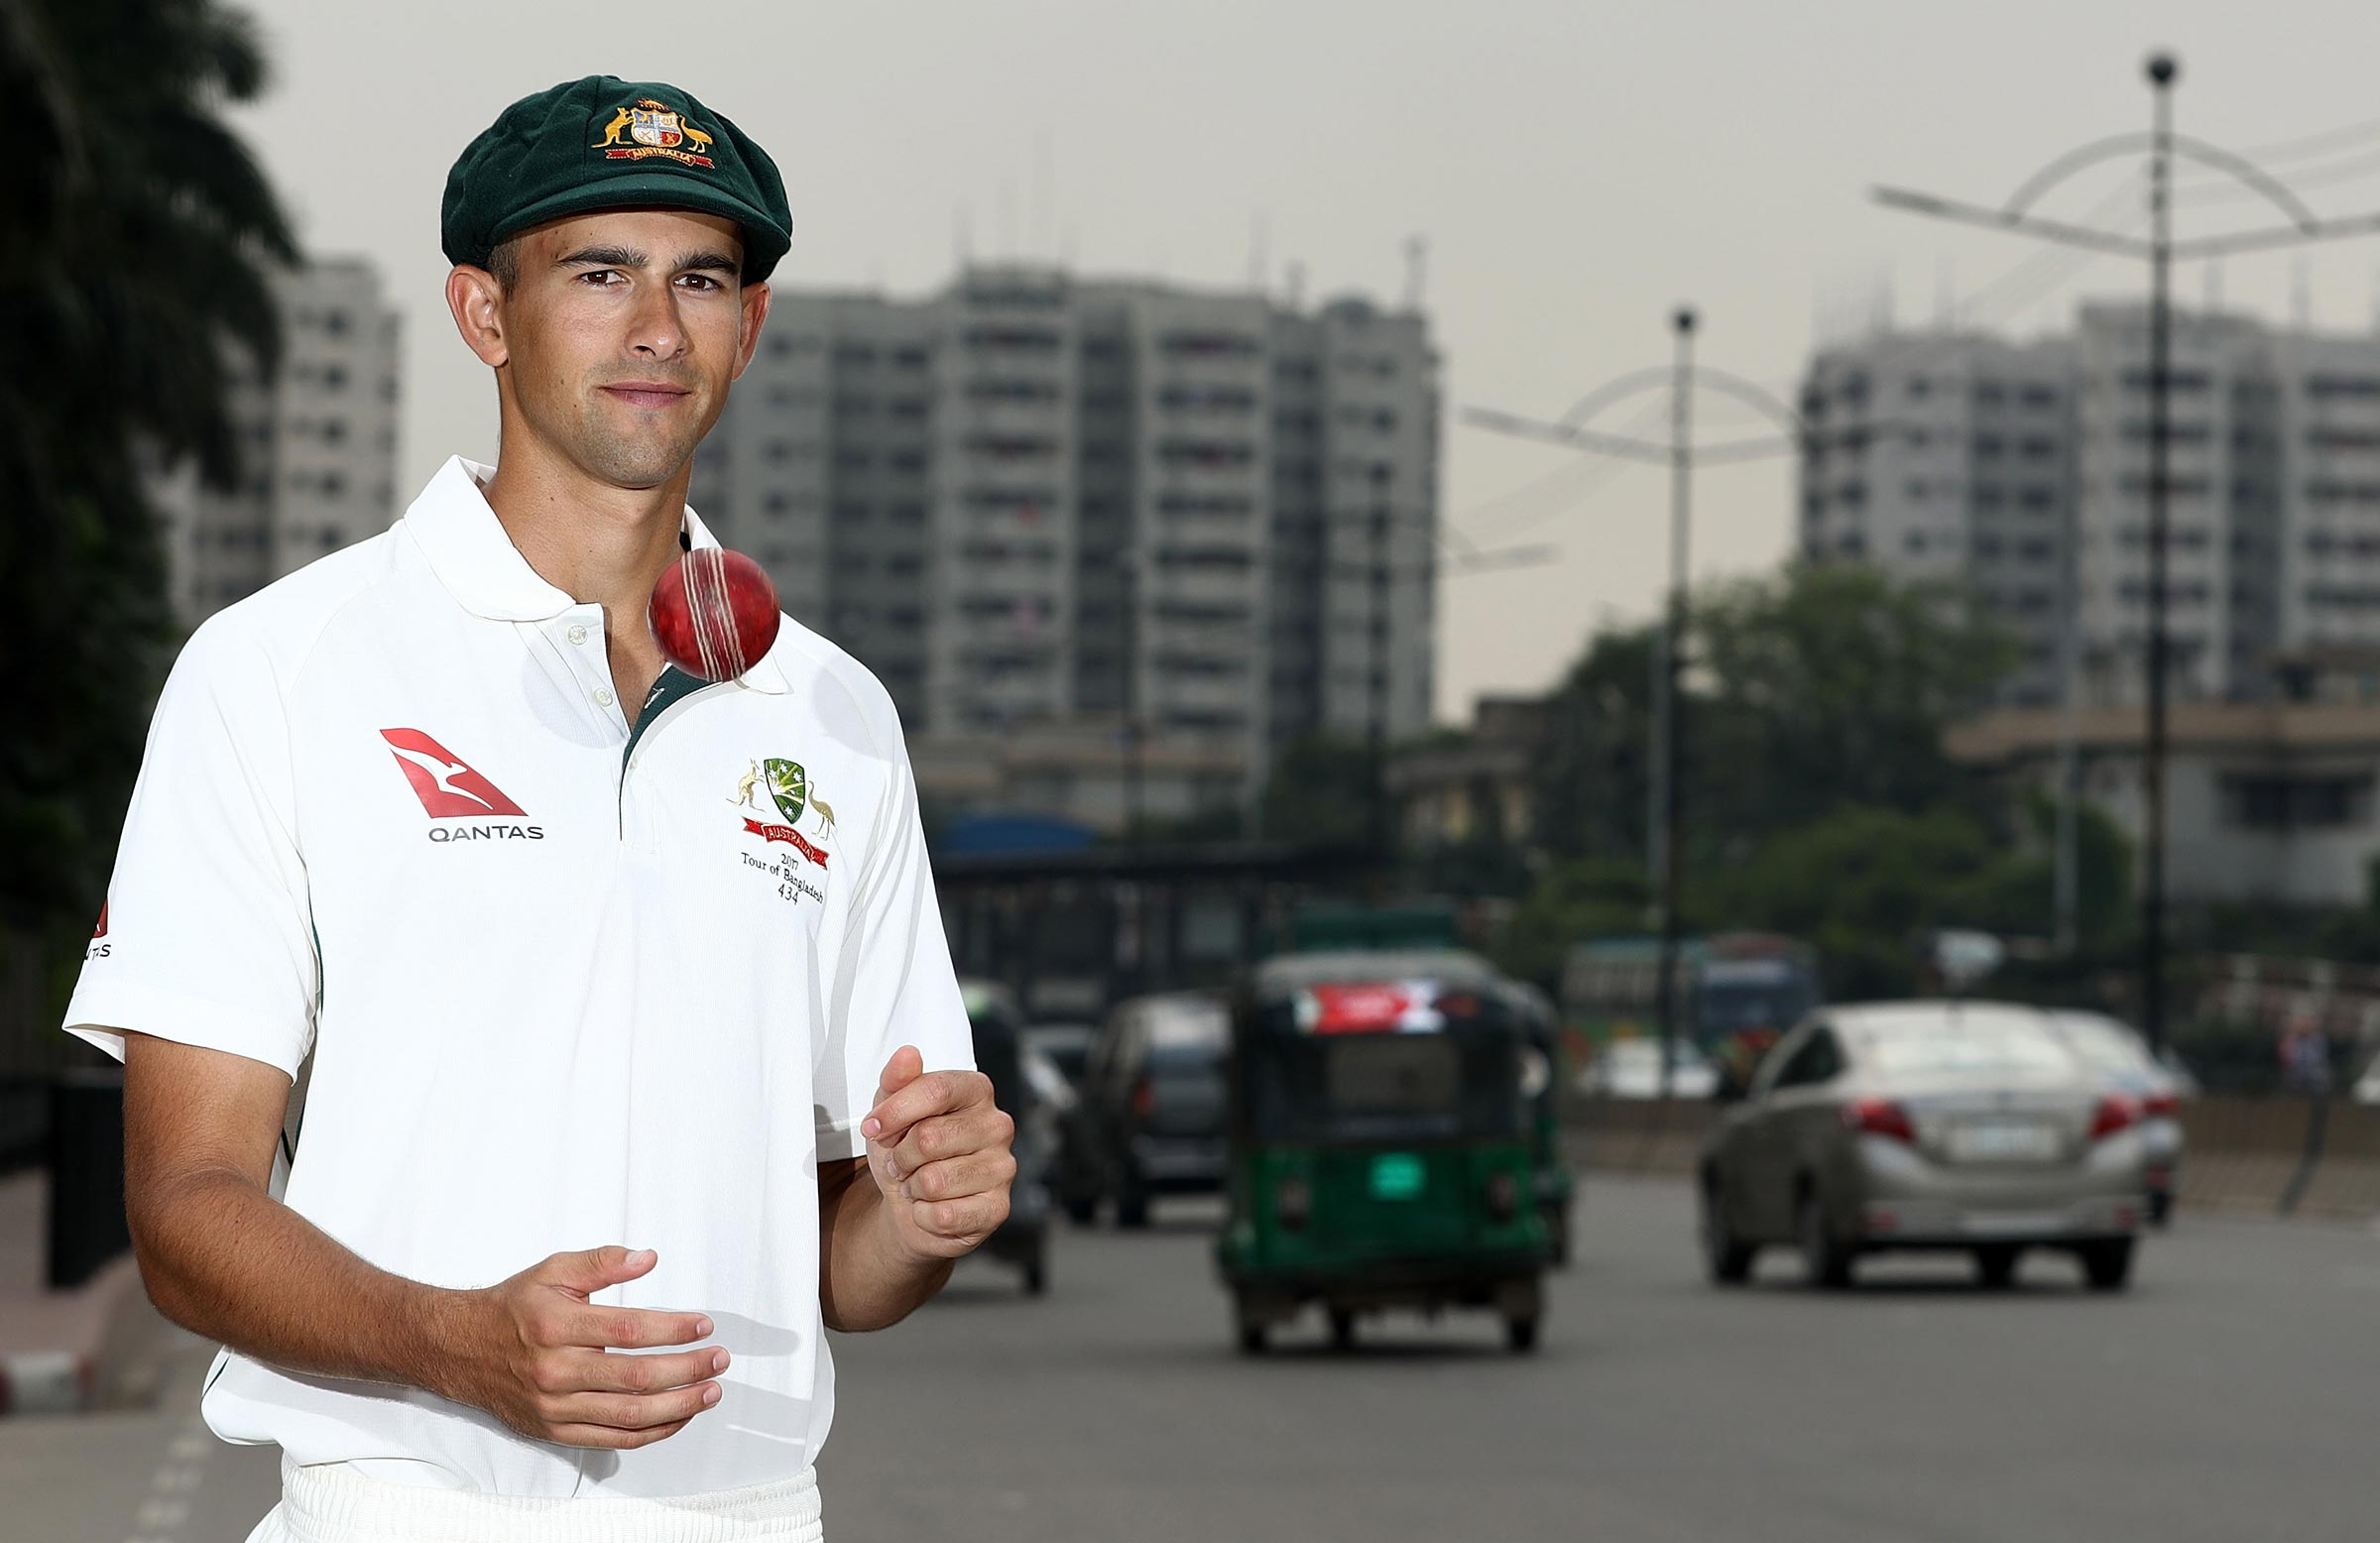 Bangladesh defeat Australia by 20 runs in 1st Test Match